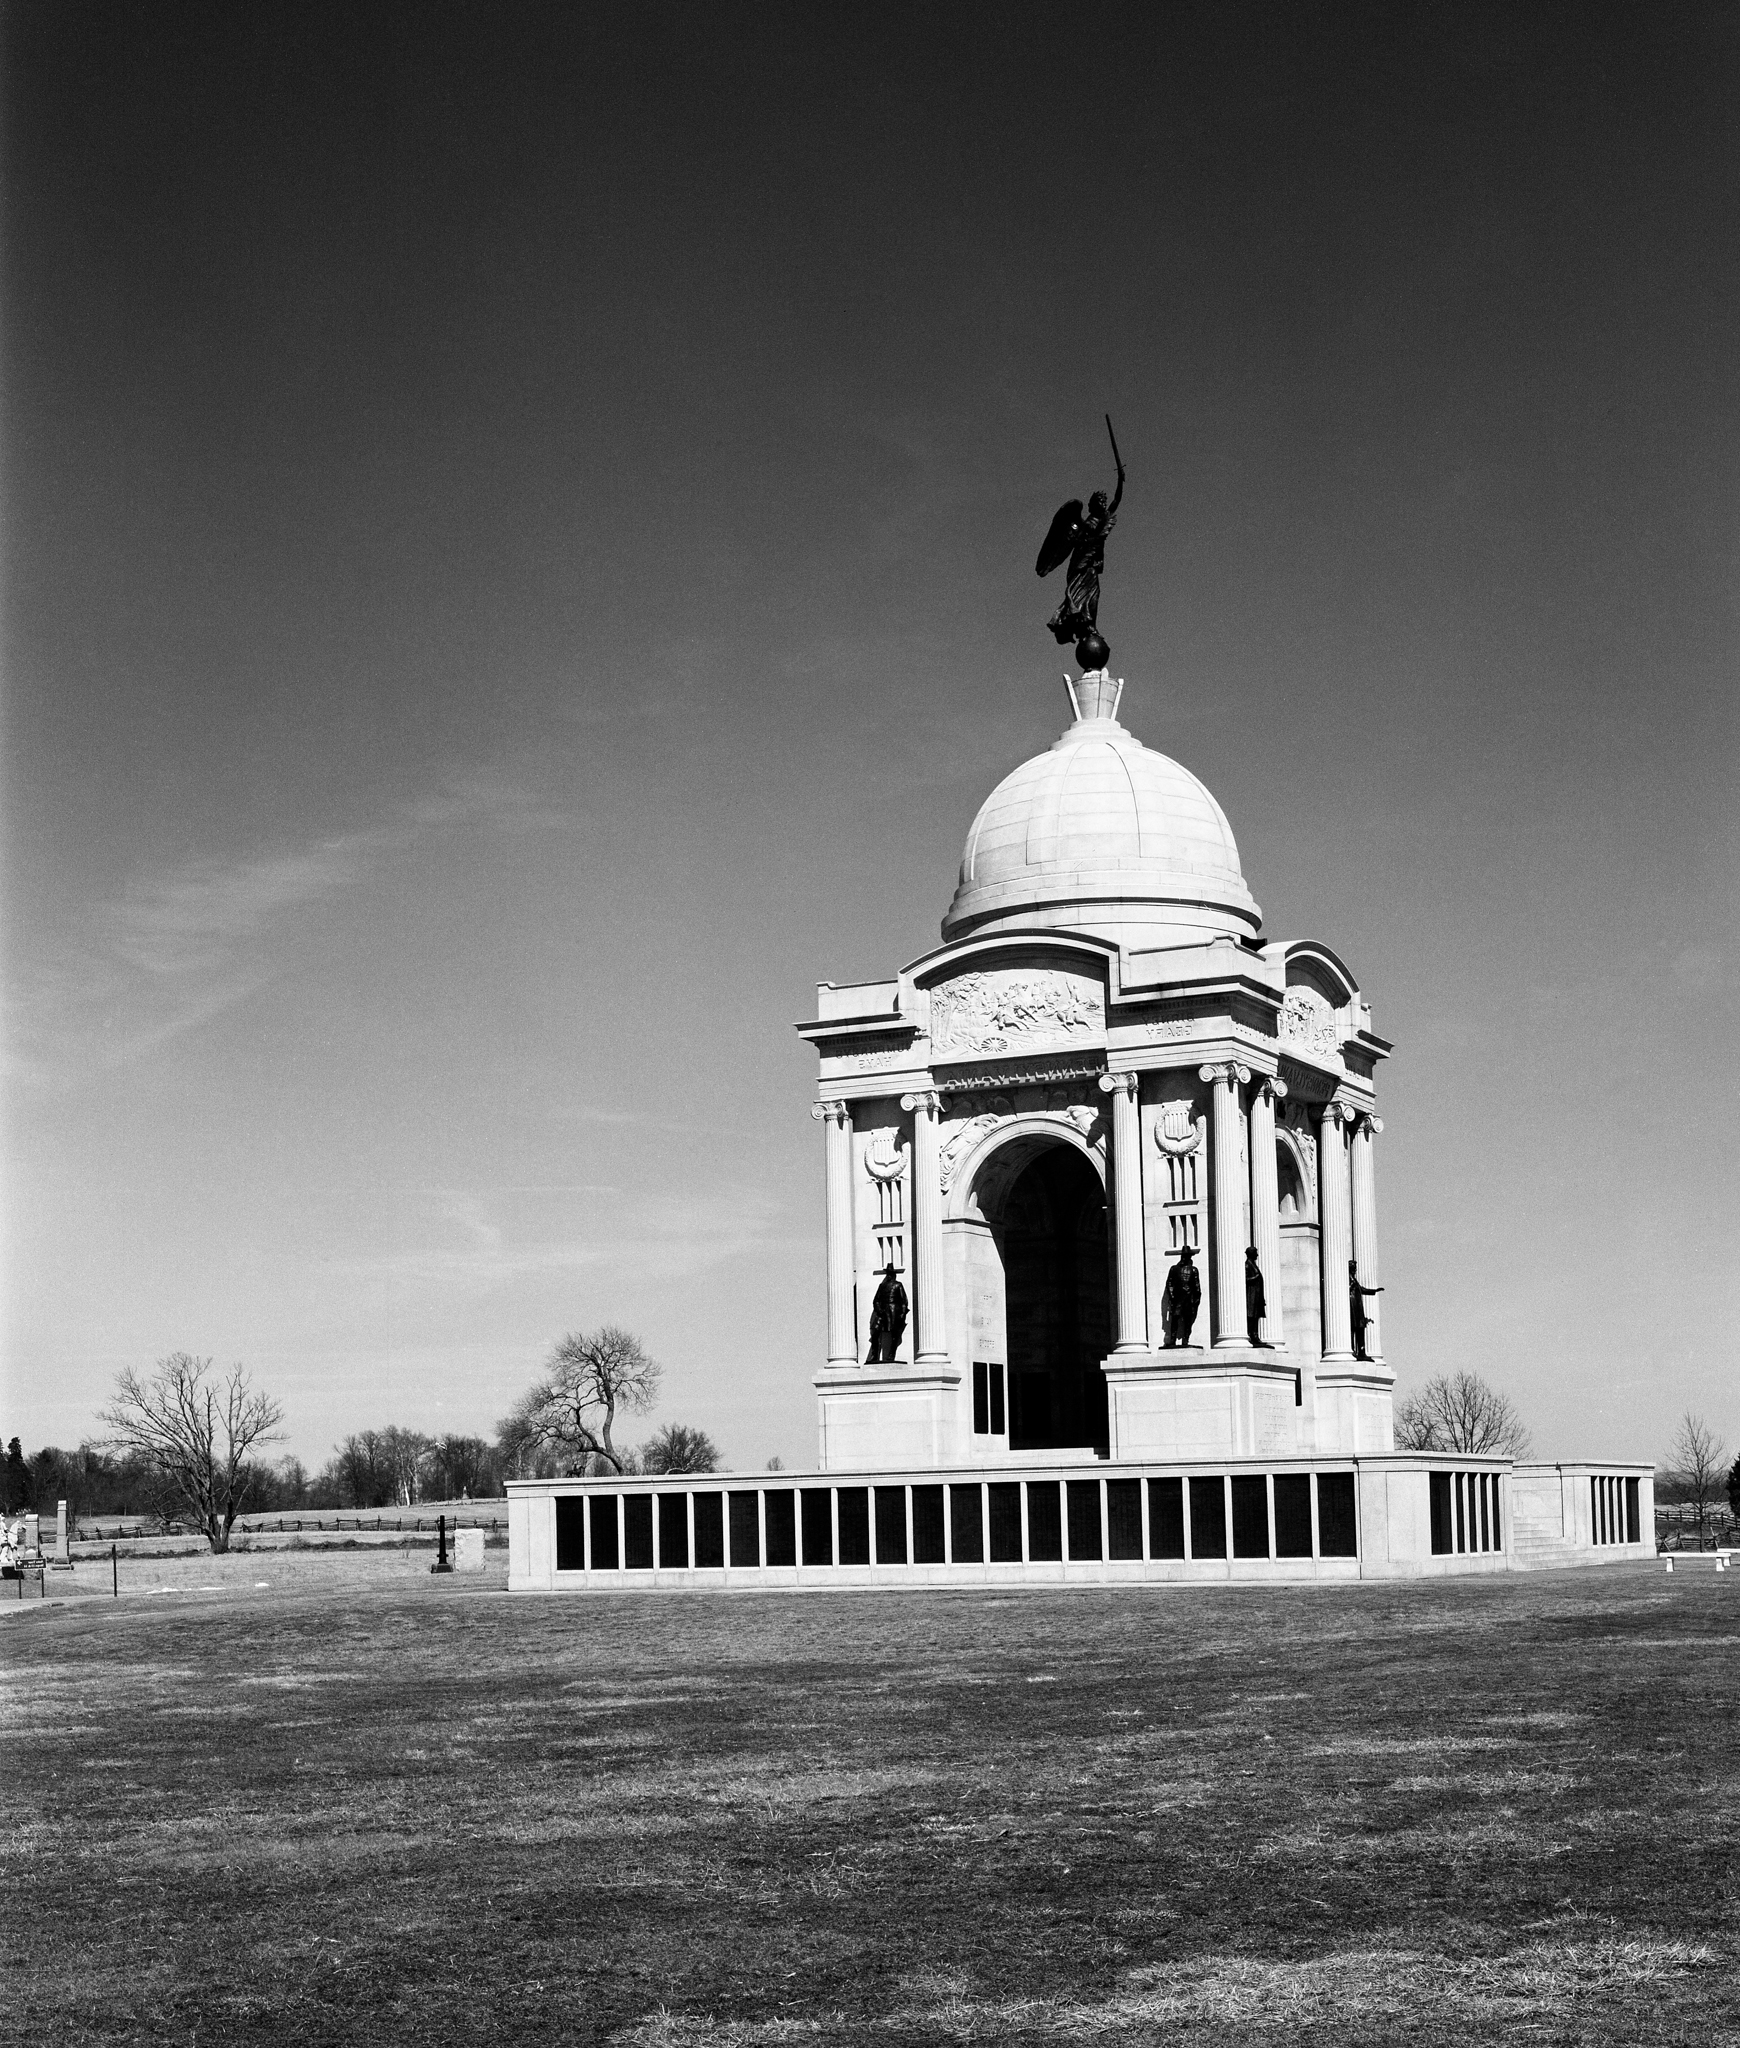 4x5_for_365_project_072_Gettysburg_PA-Monument.jpg